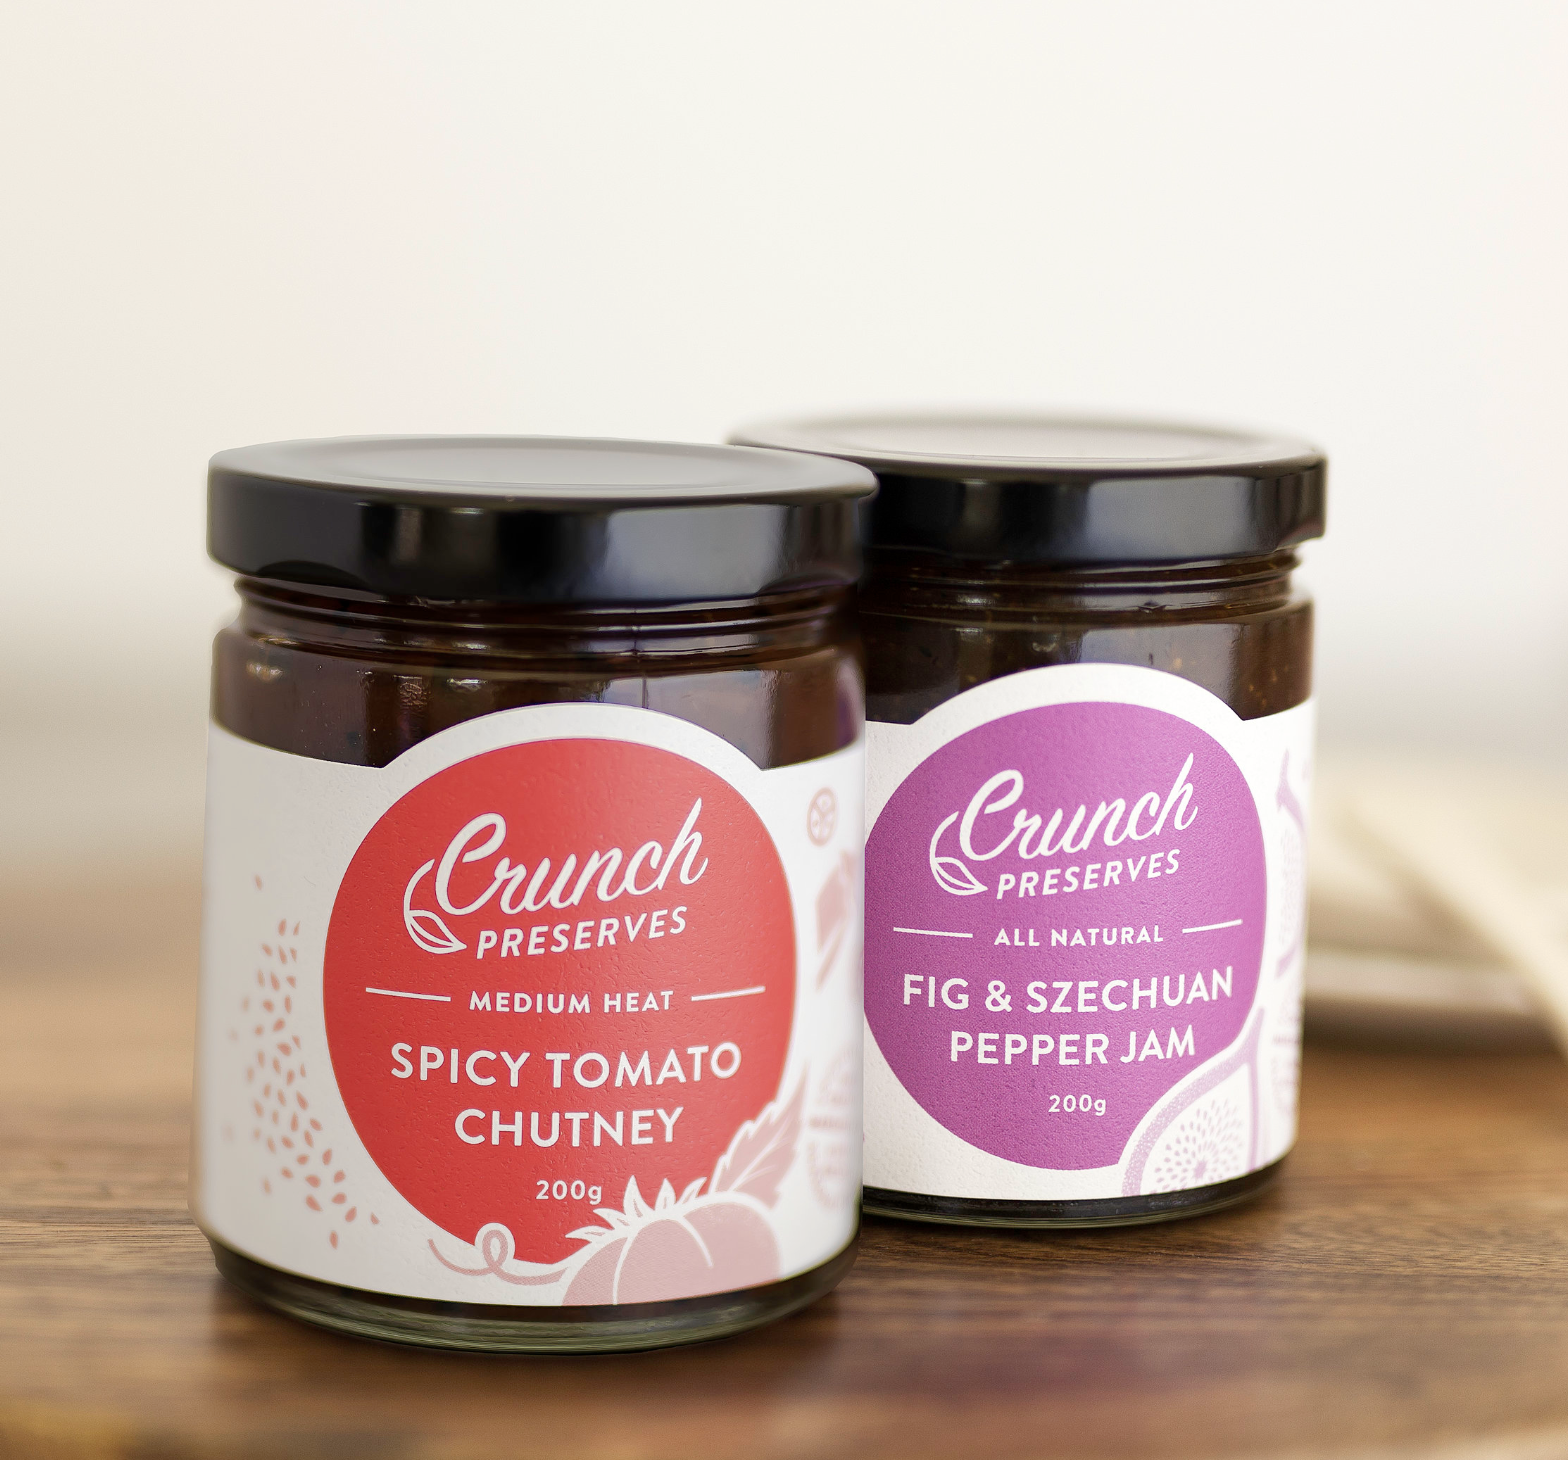 Crunch Preserves We have 2 exciting new products to tell you about. Fig & Szechuan Pepper Jam and Spicy Tomato Chutney.